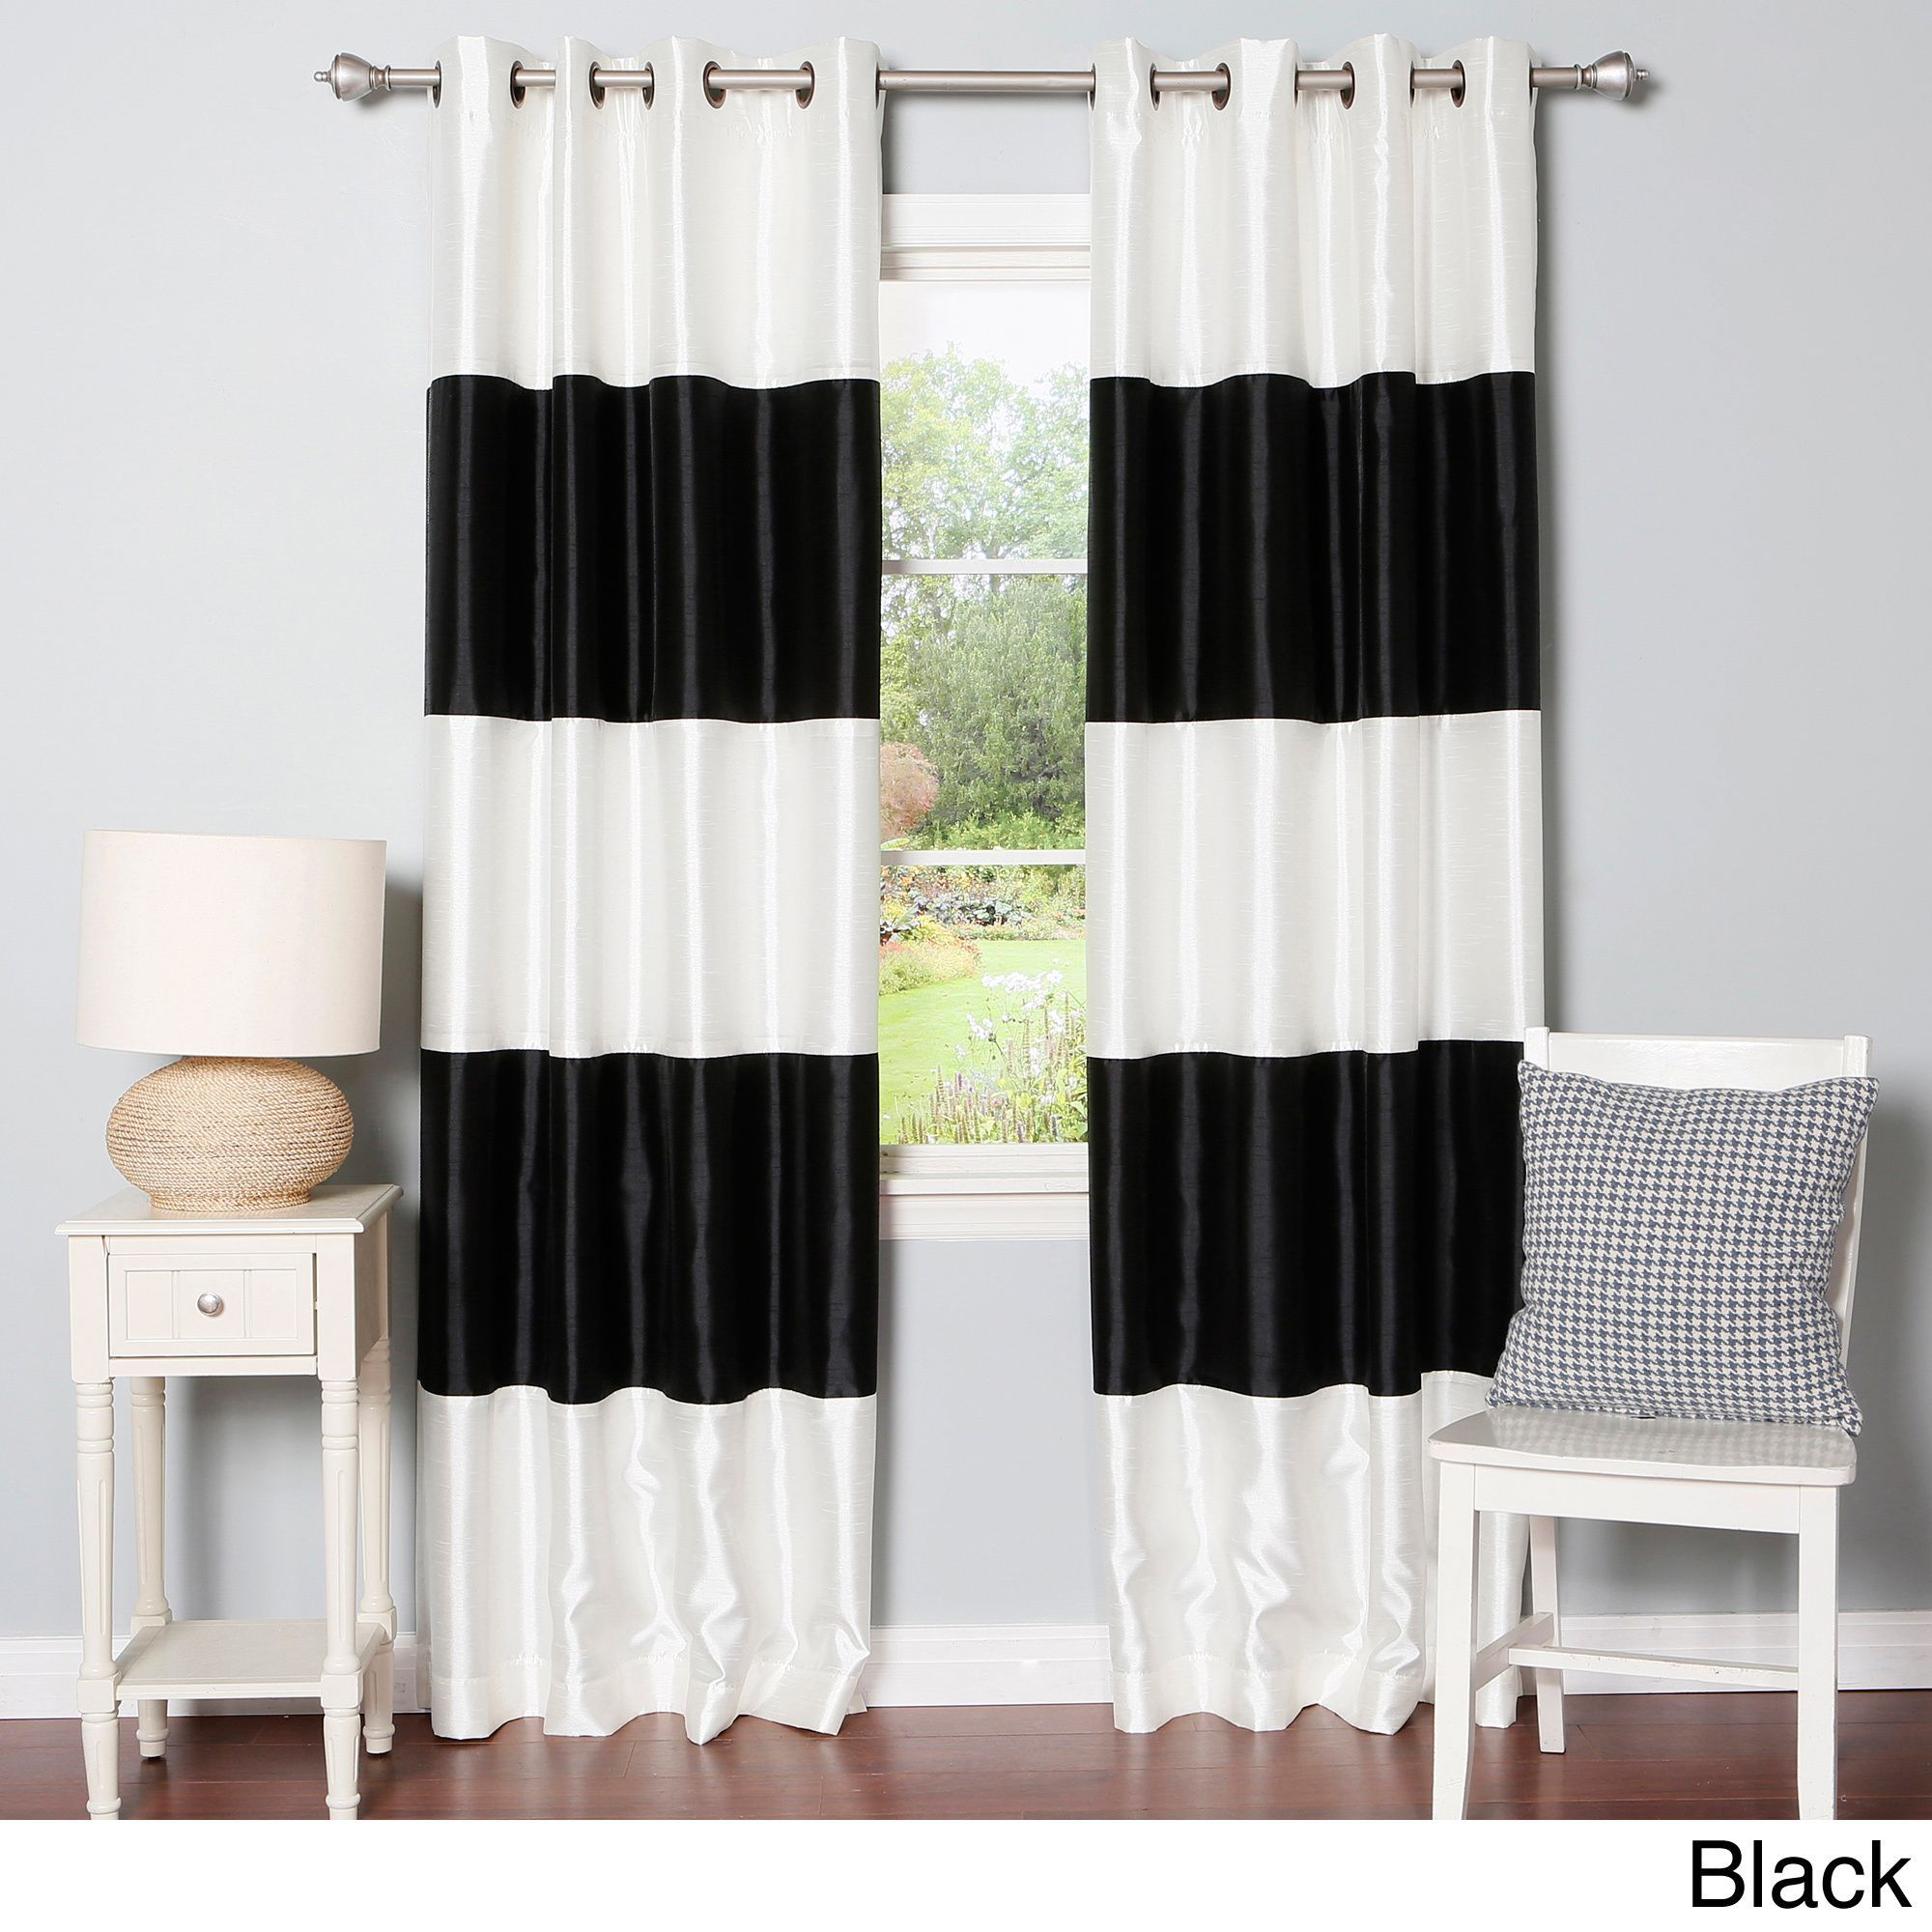 Curtain pair overstock shopping great deals on lights out curtains - Aurora Home Striped Dupioni Grommet Top Blackout Curtain Panel Pair By Aurora Home